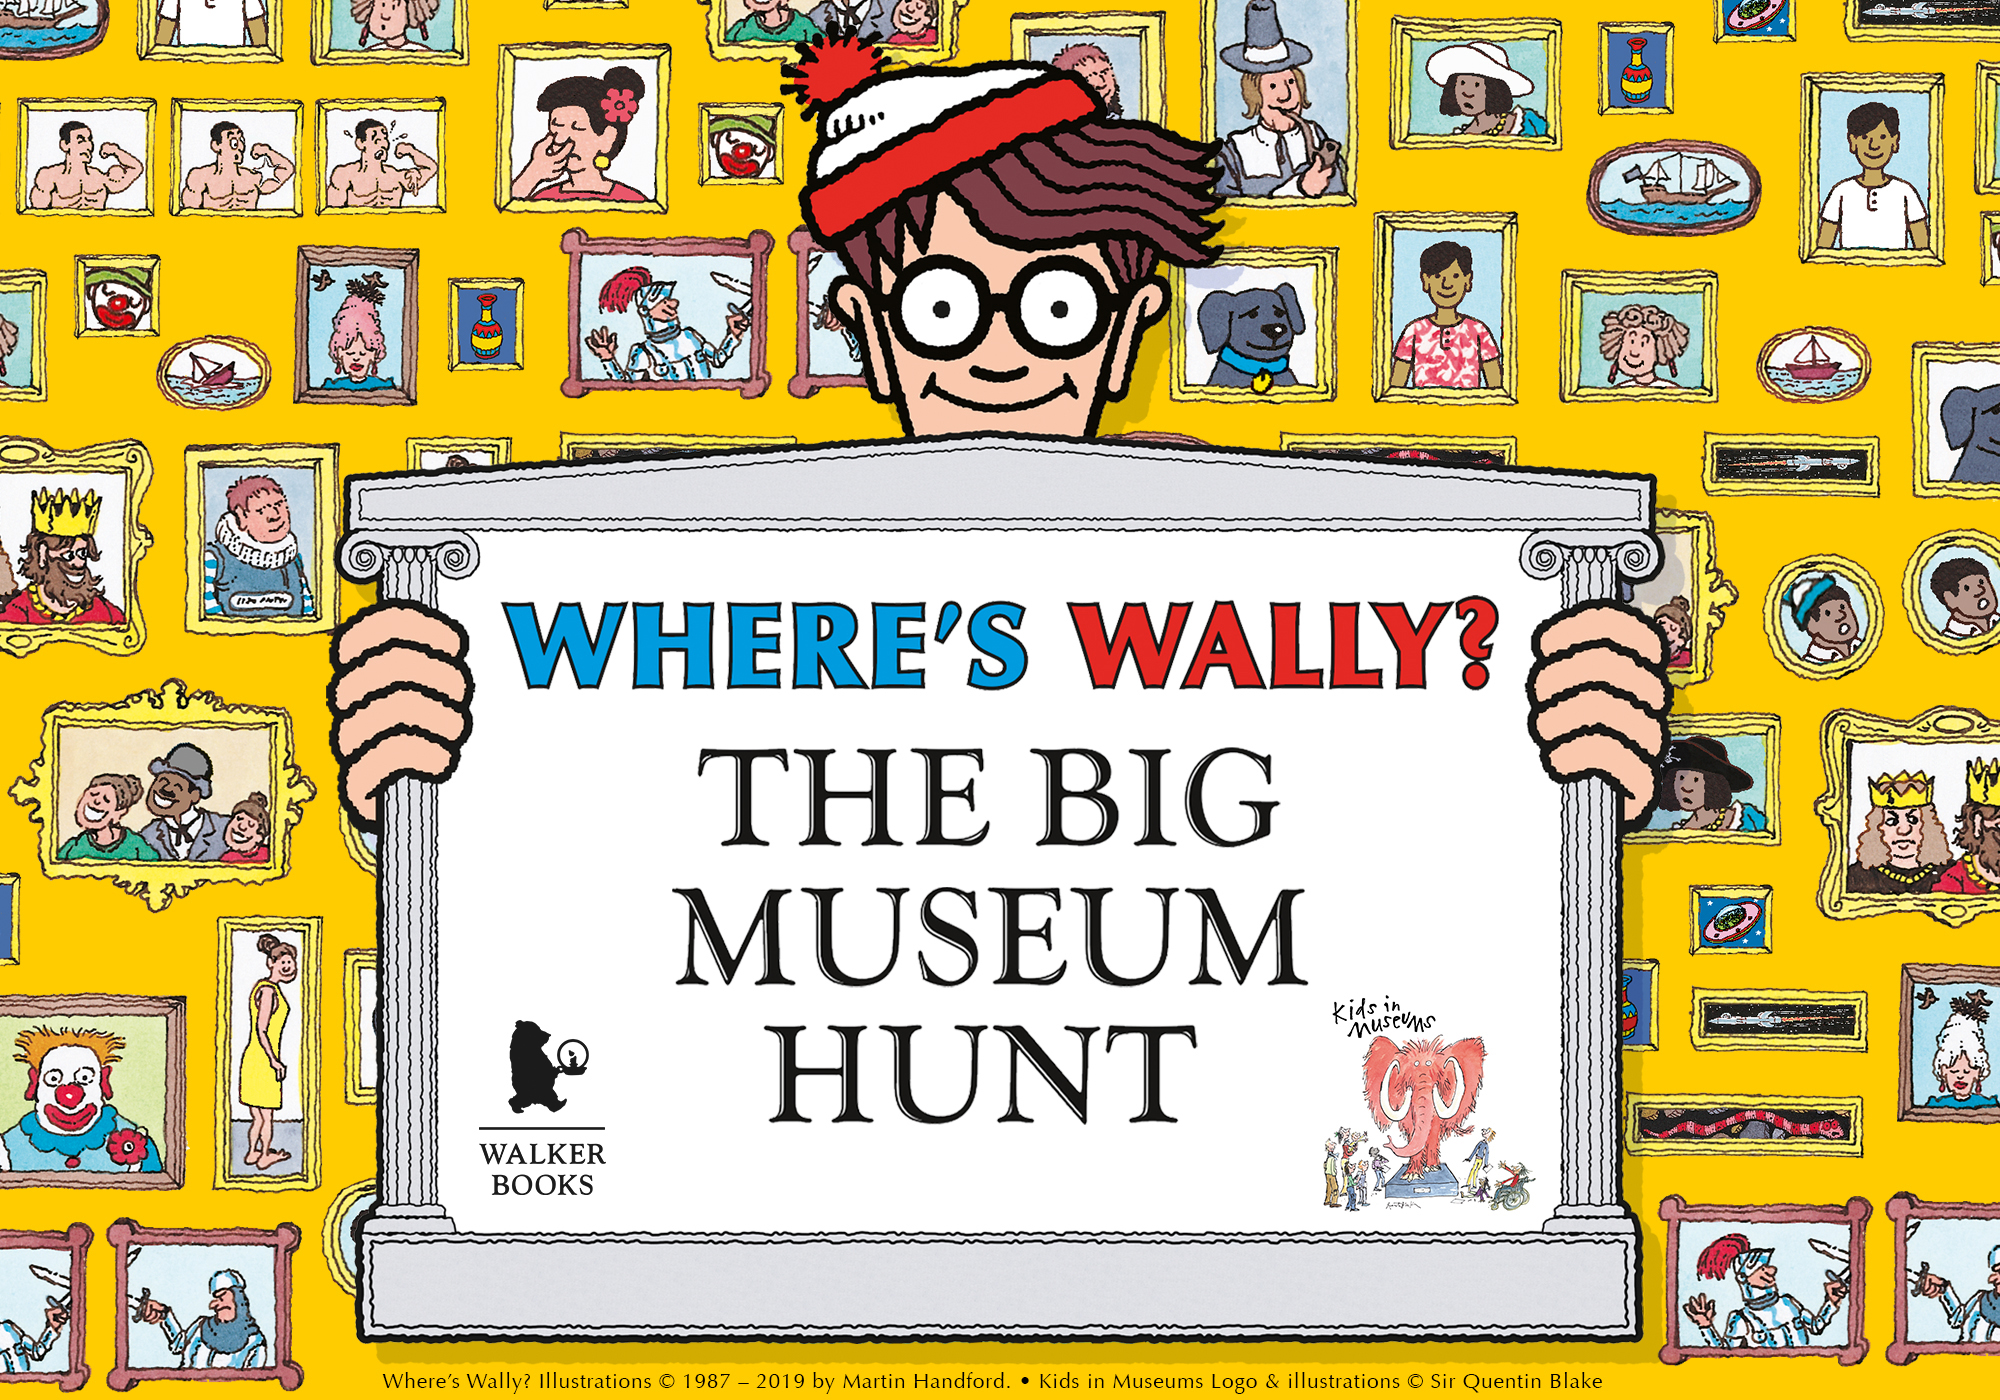 Where's Wally? The Big Museum Hunt